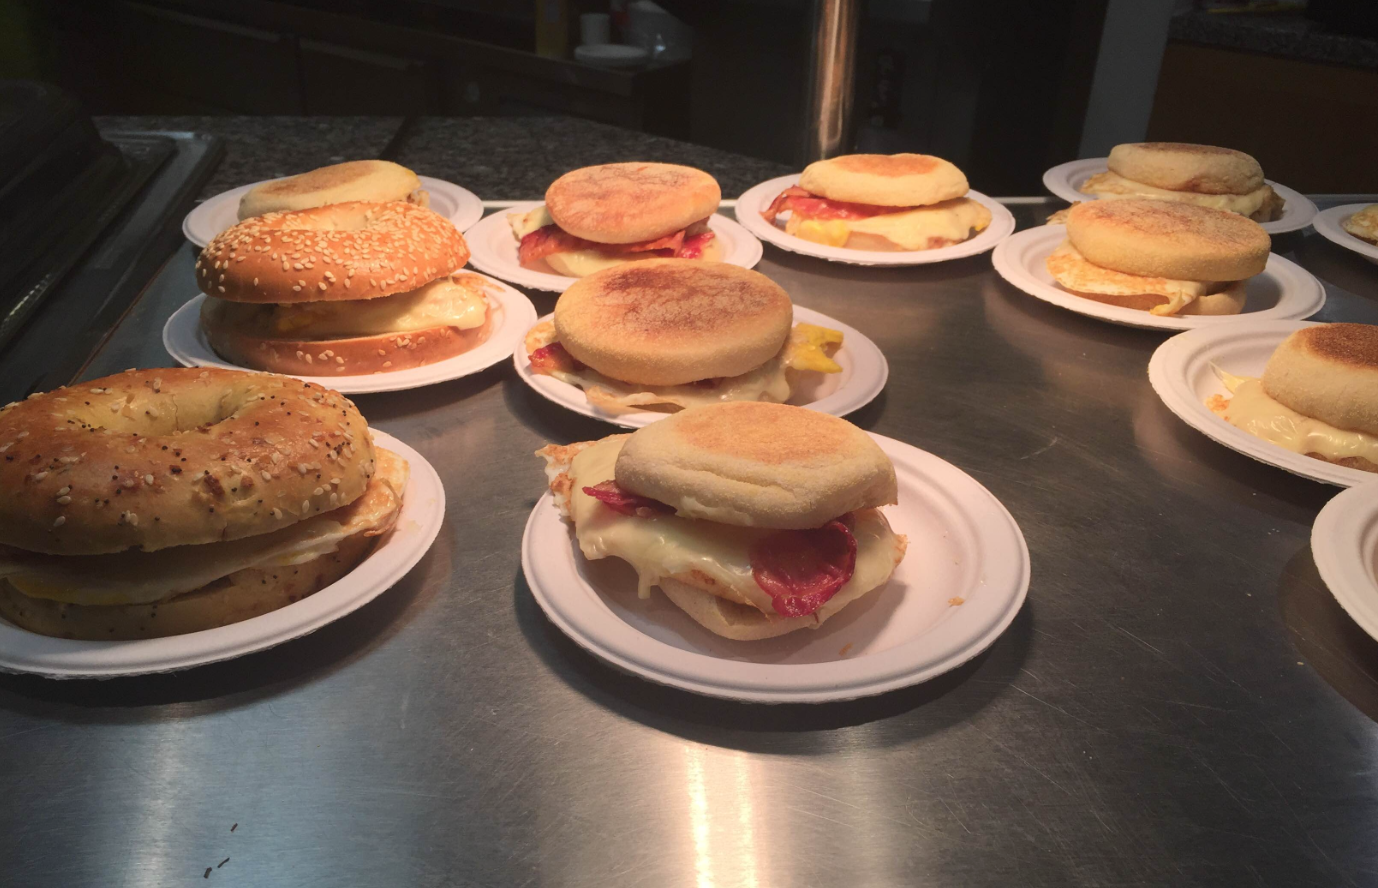 Breakfast Sandwiches at CGIS Cafe